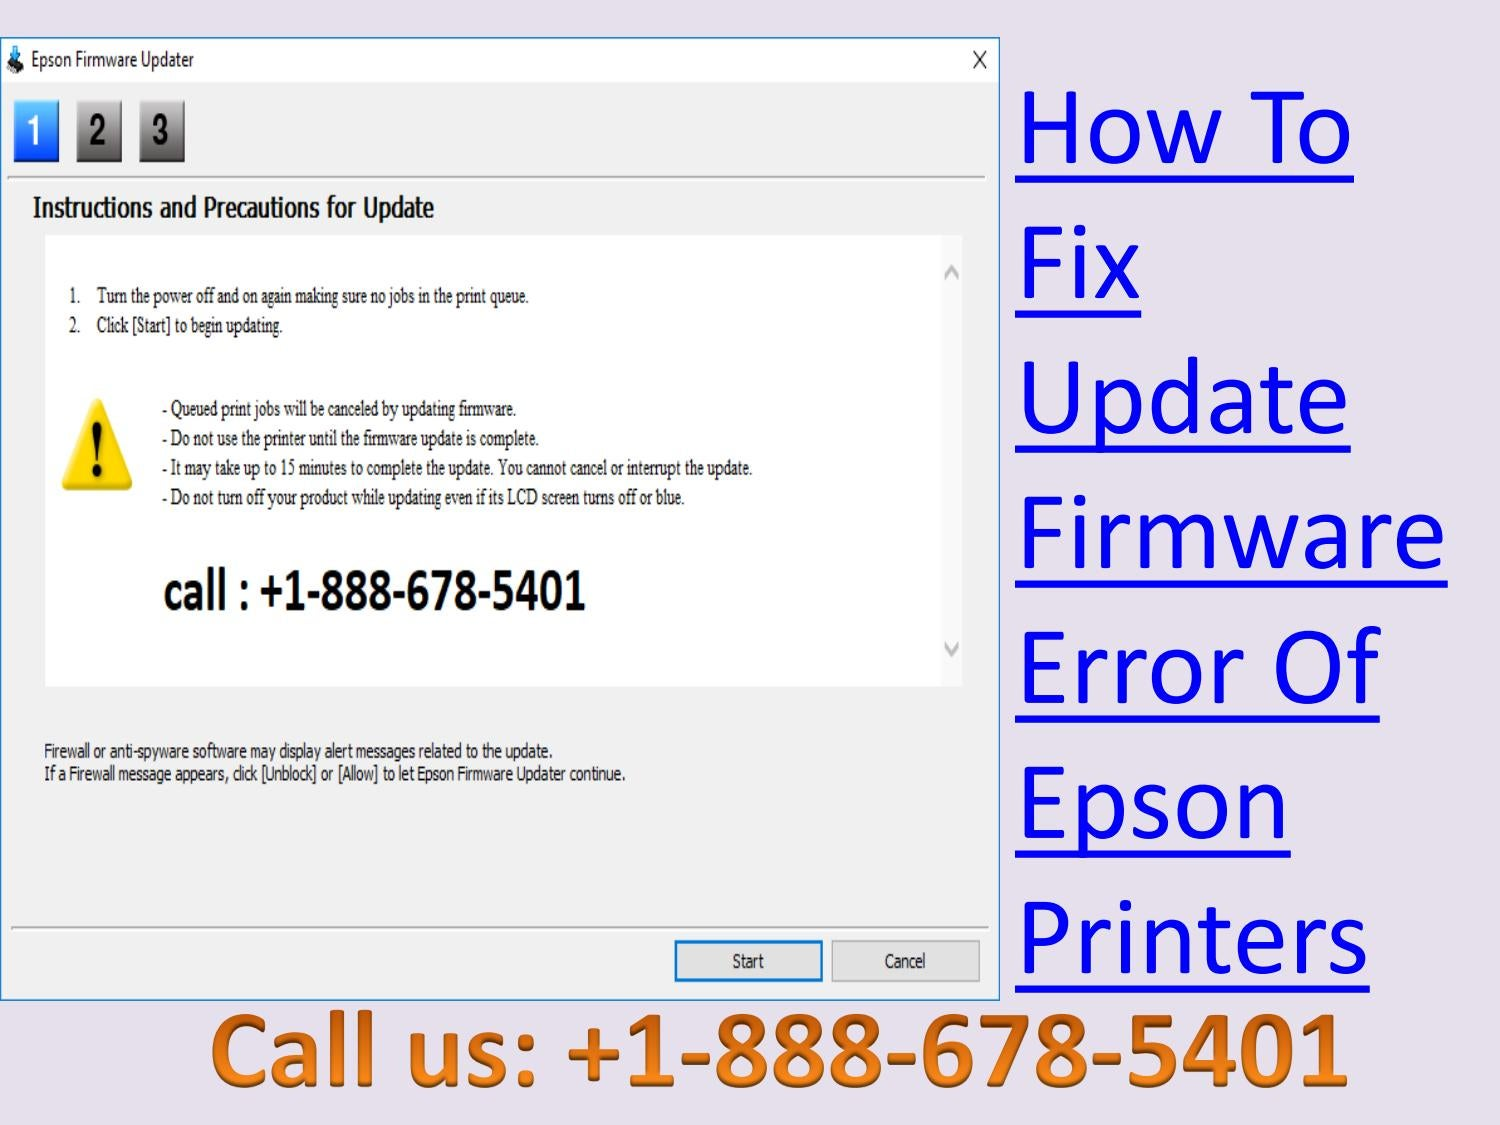 Dial +1-888-678-5401 How To Fix Update Firmware Error Of Epson Printers